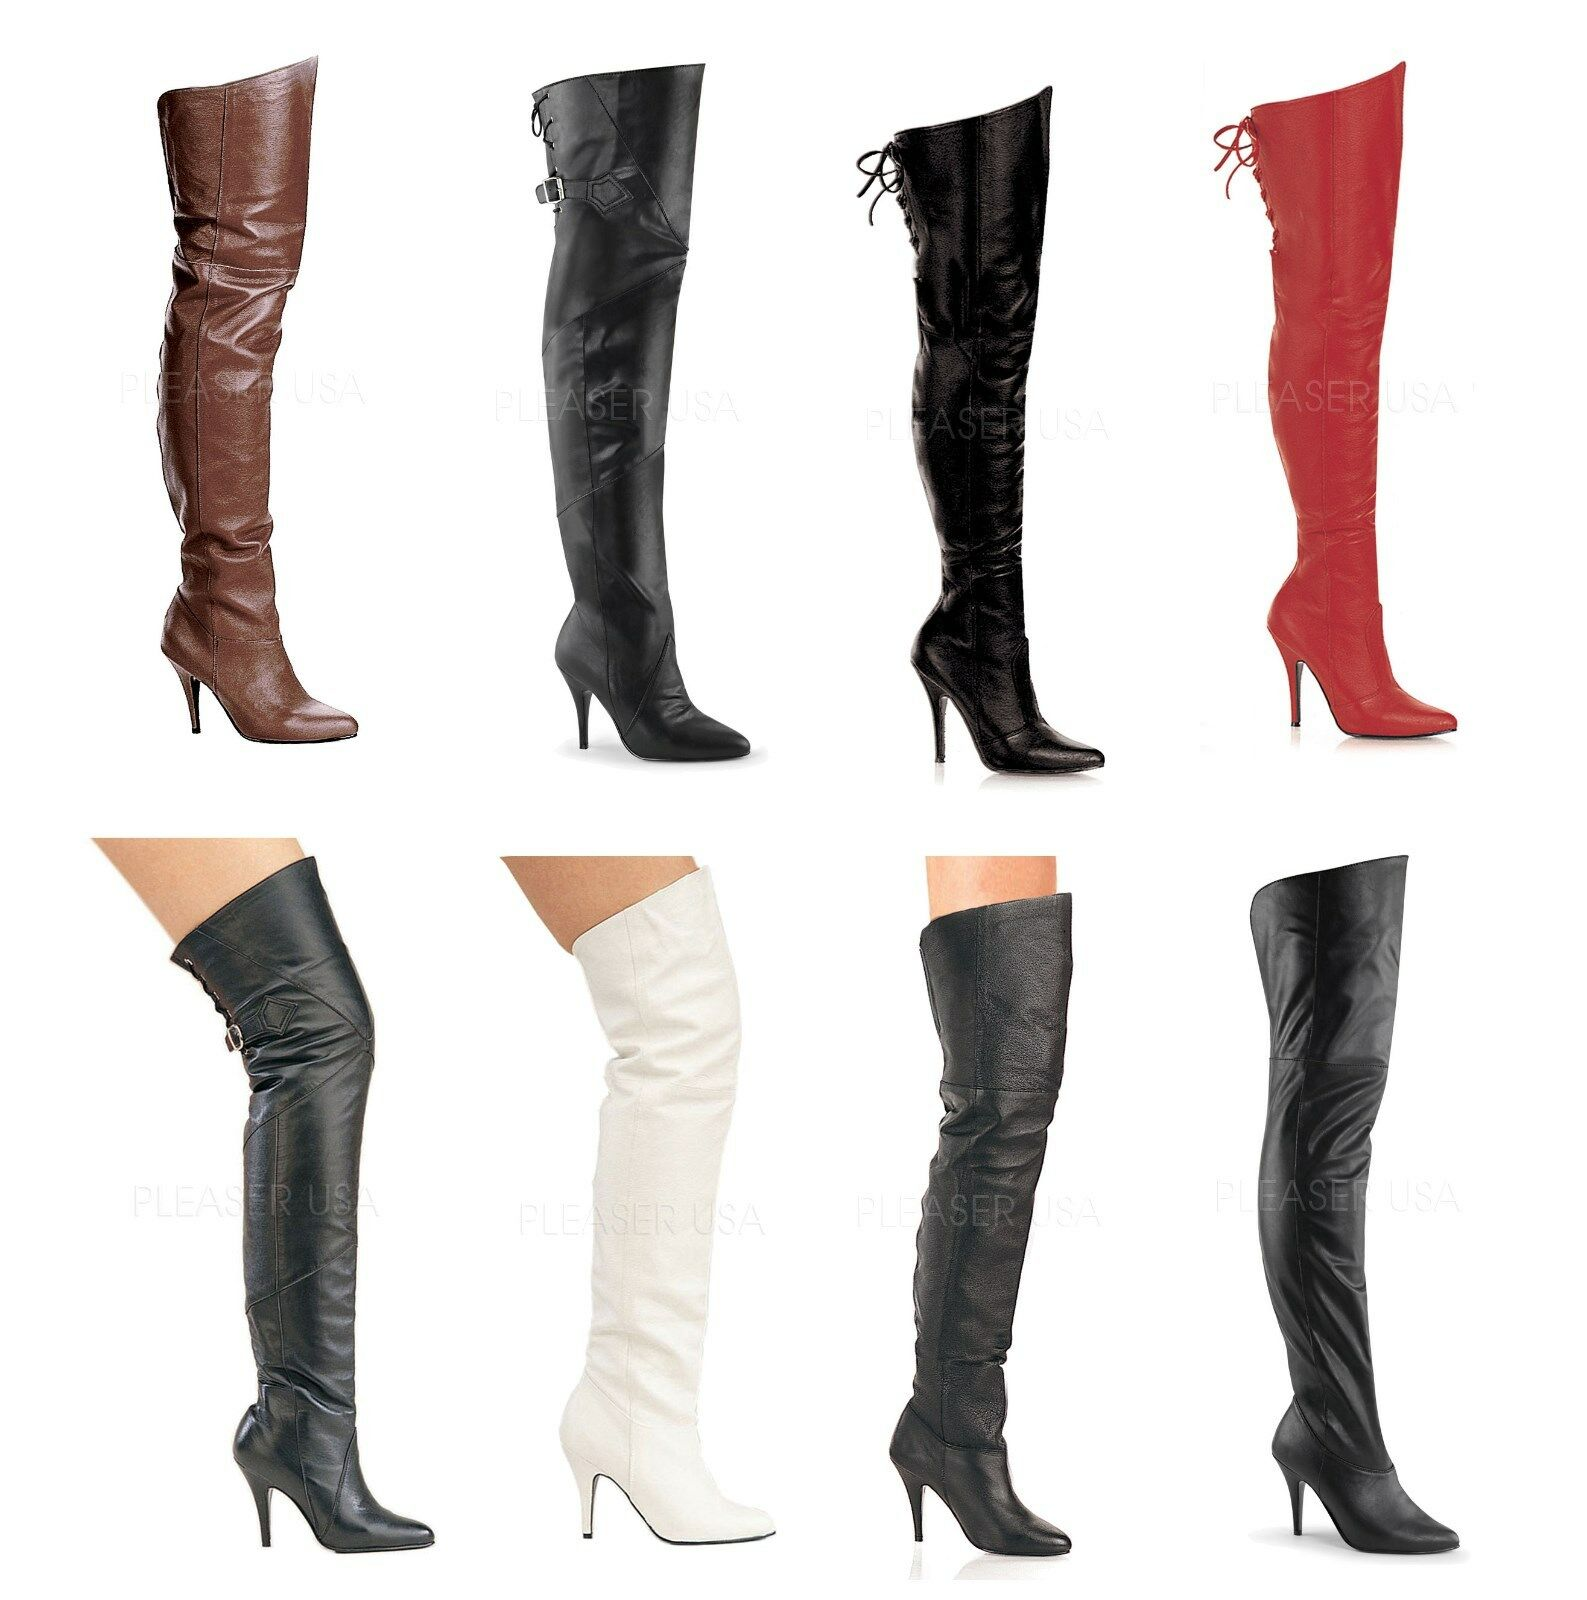 Pleaser LEGEND-8868 8890 8899 Sexy Leder Thigh High boots Größe 6-16